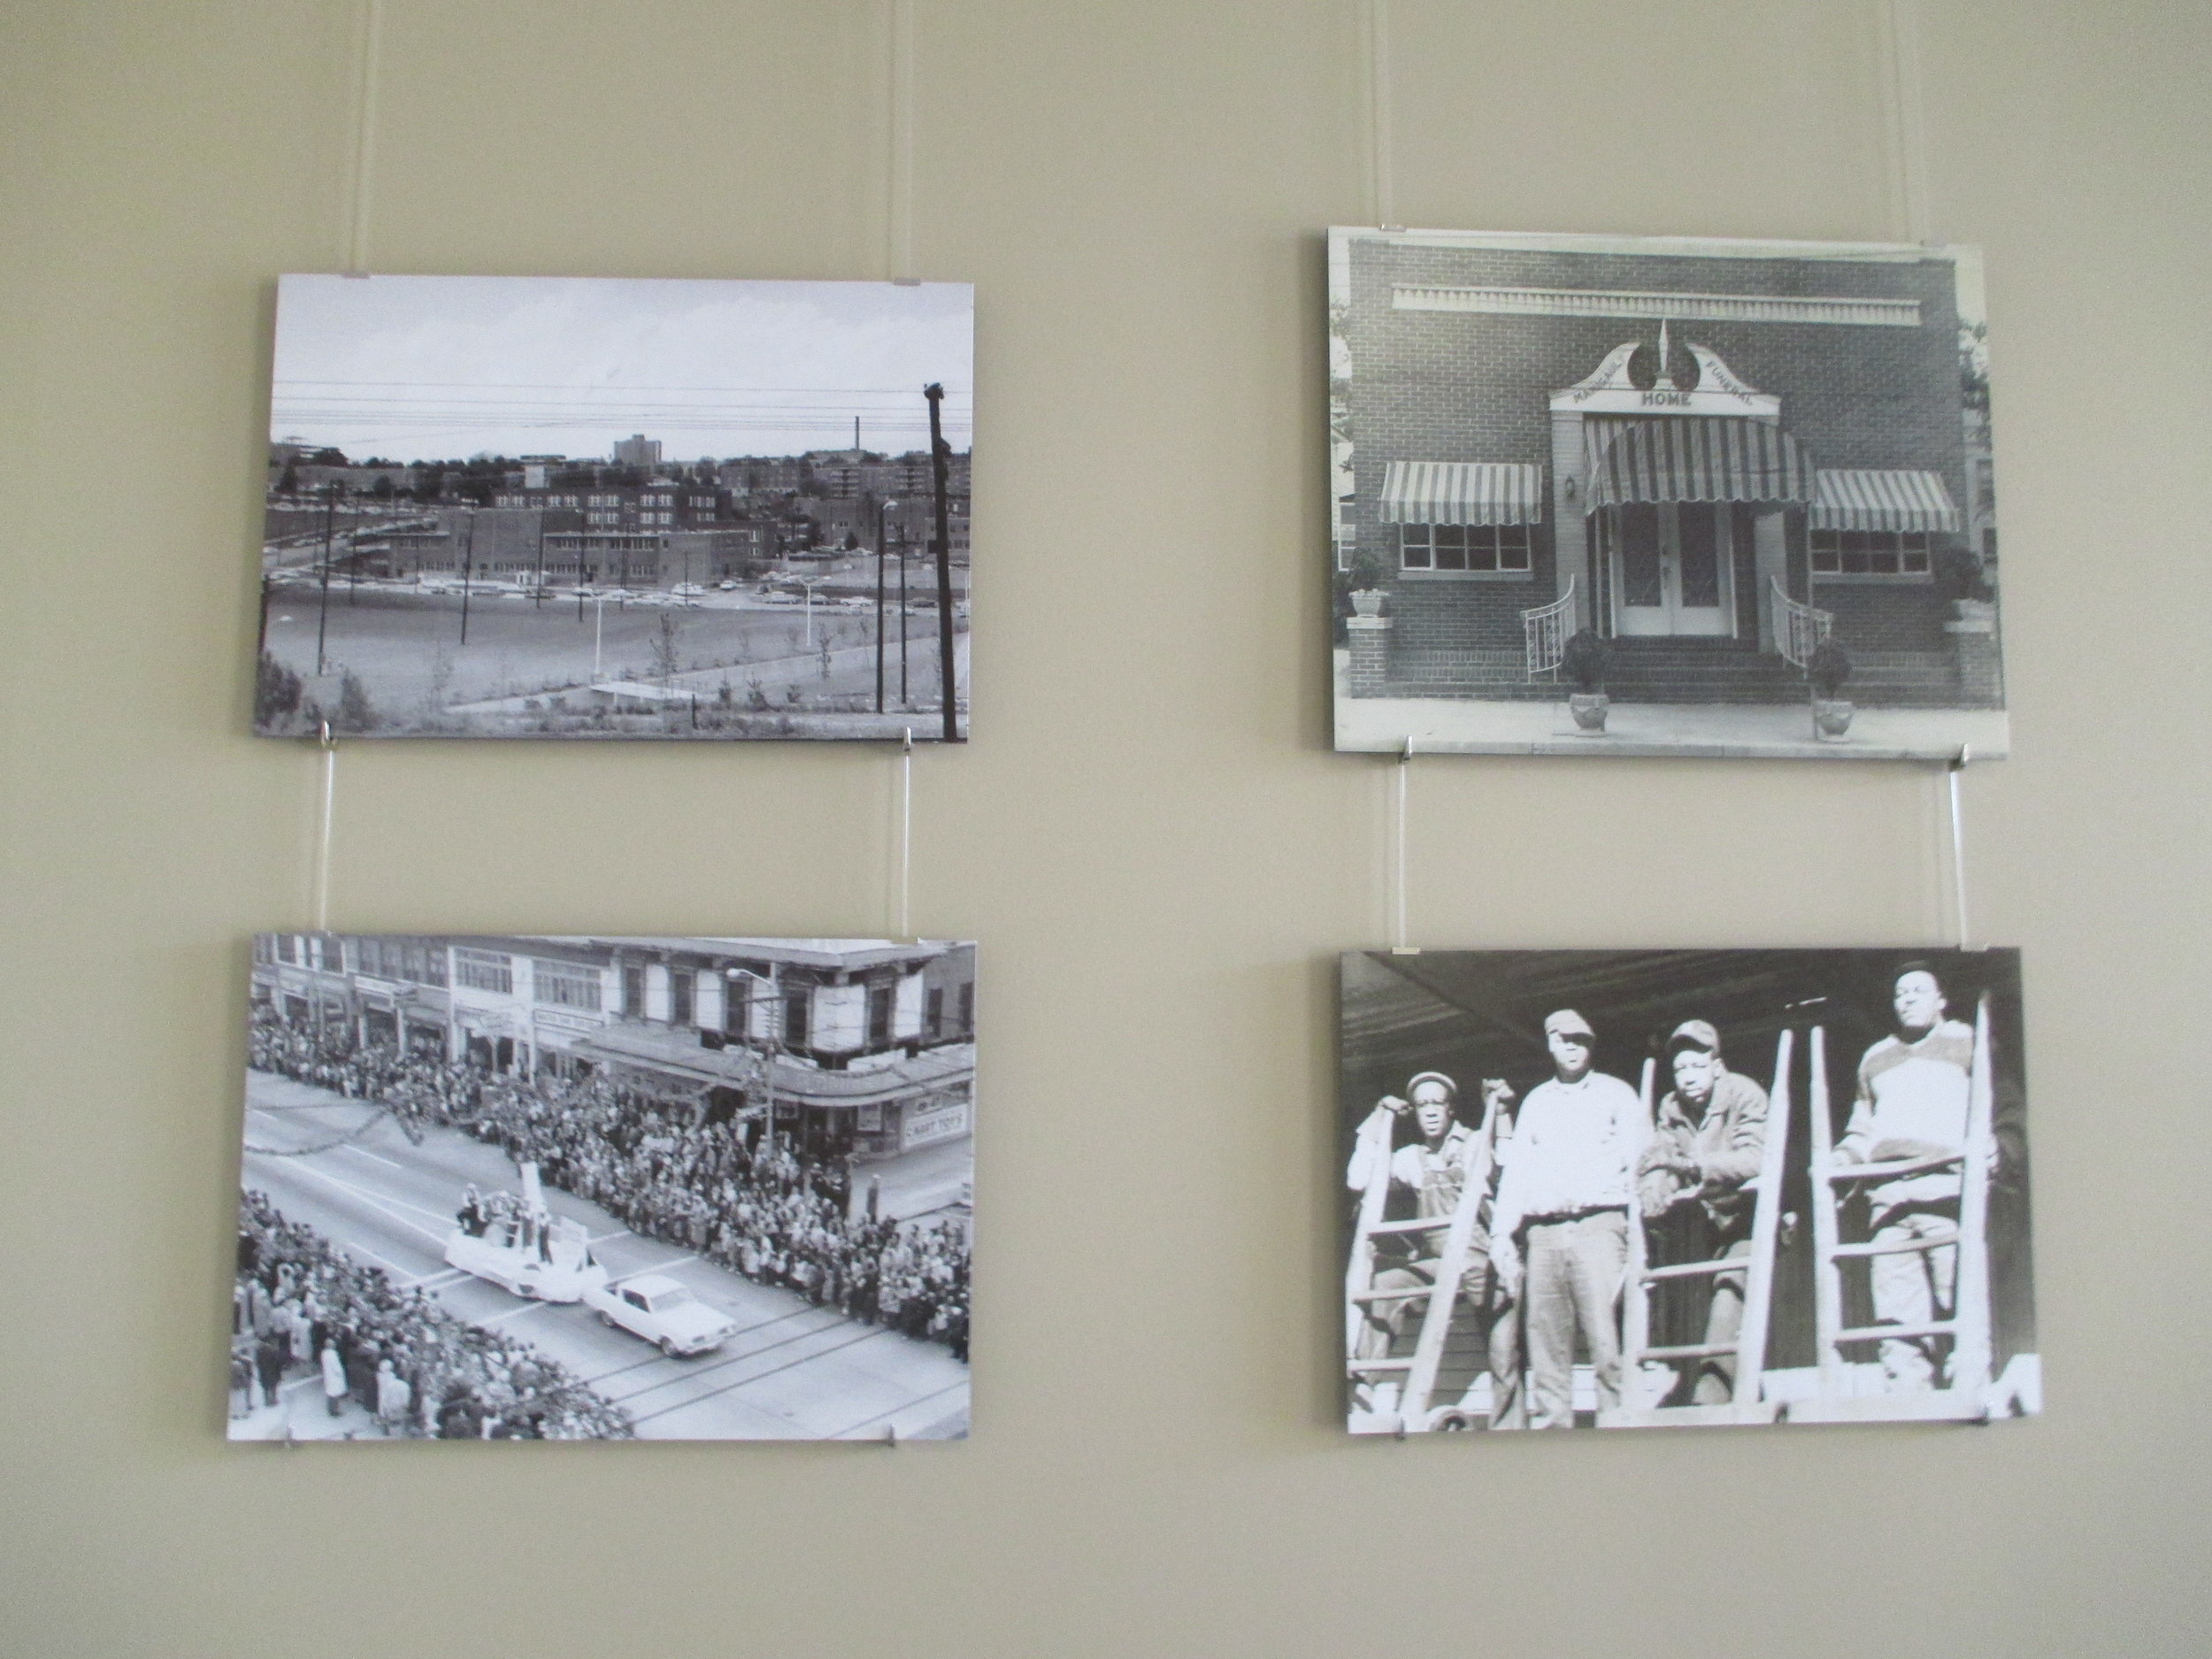 Four photos held by Koslov's hanging system in the People section of the exhibit.